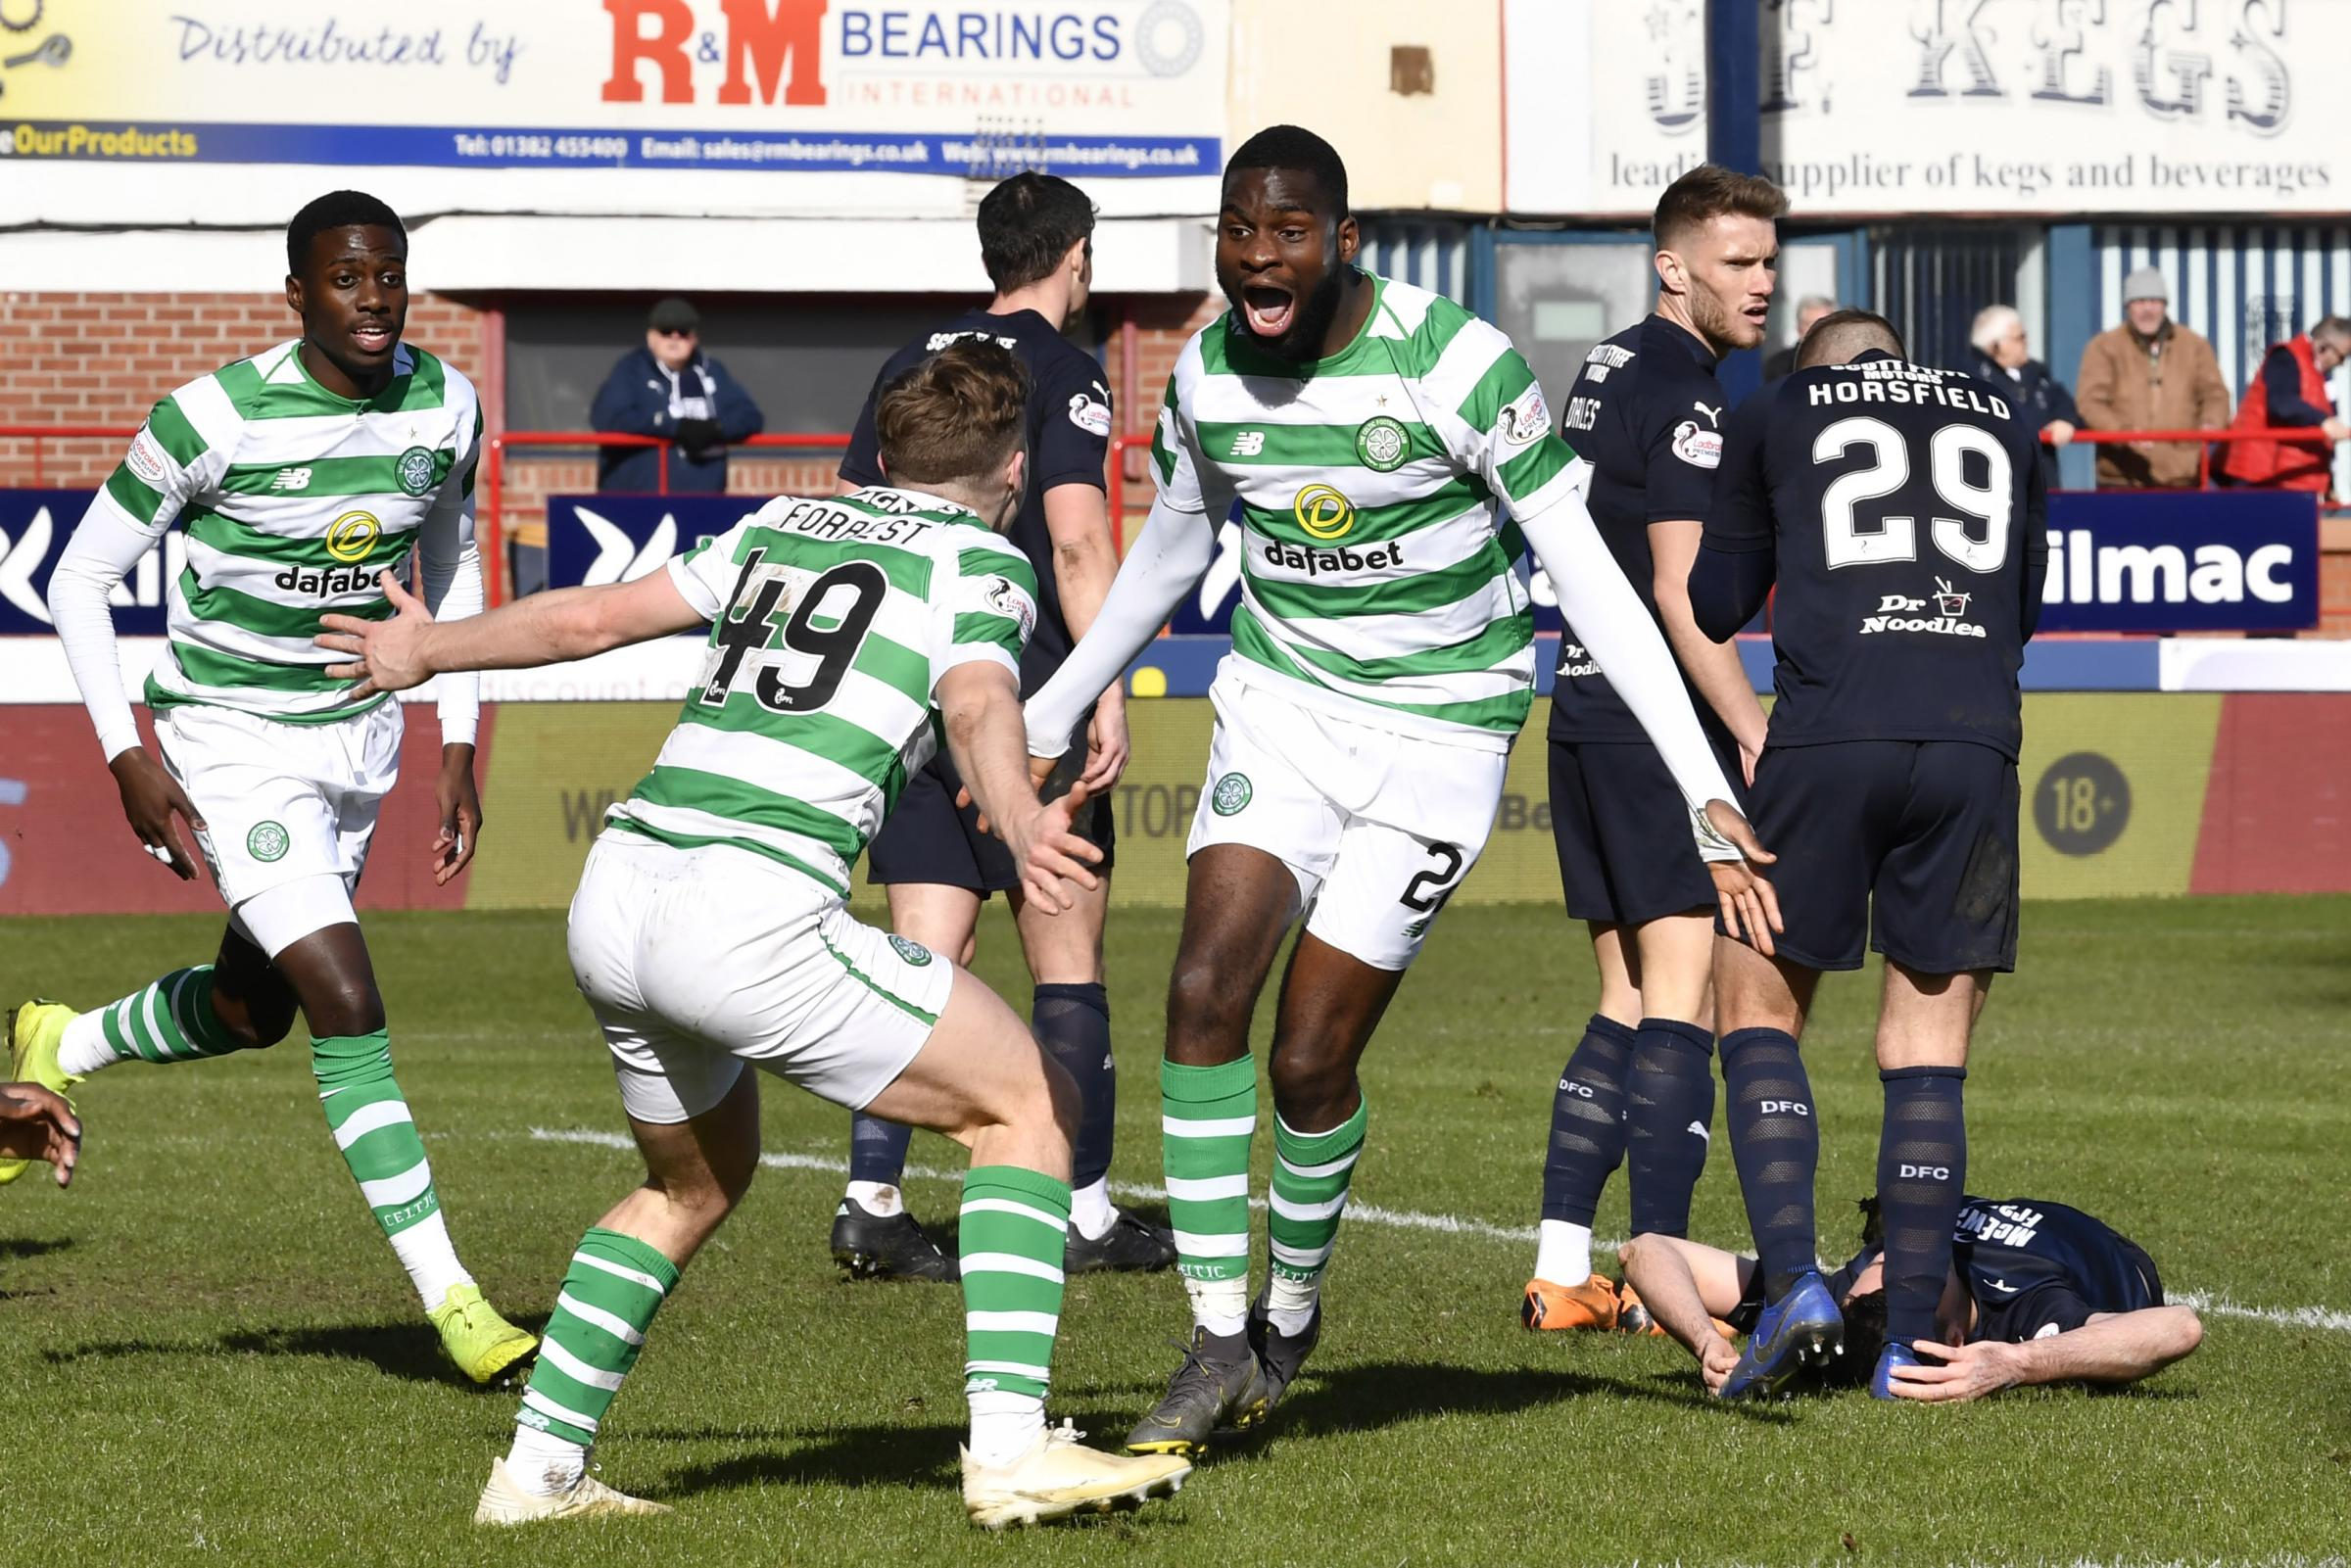 Dundee 0 Celtic 1: Five talking points from Celtic's last-gasp win at Dens Park